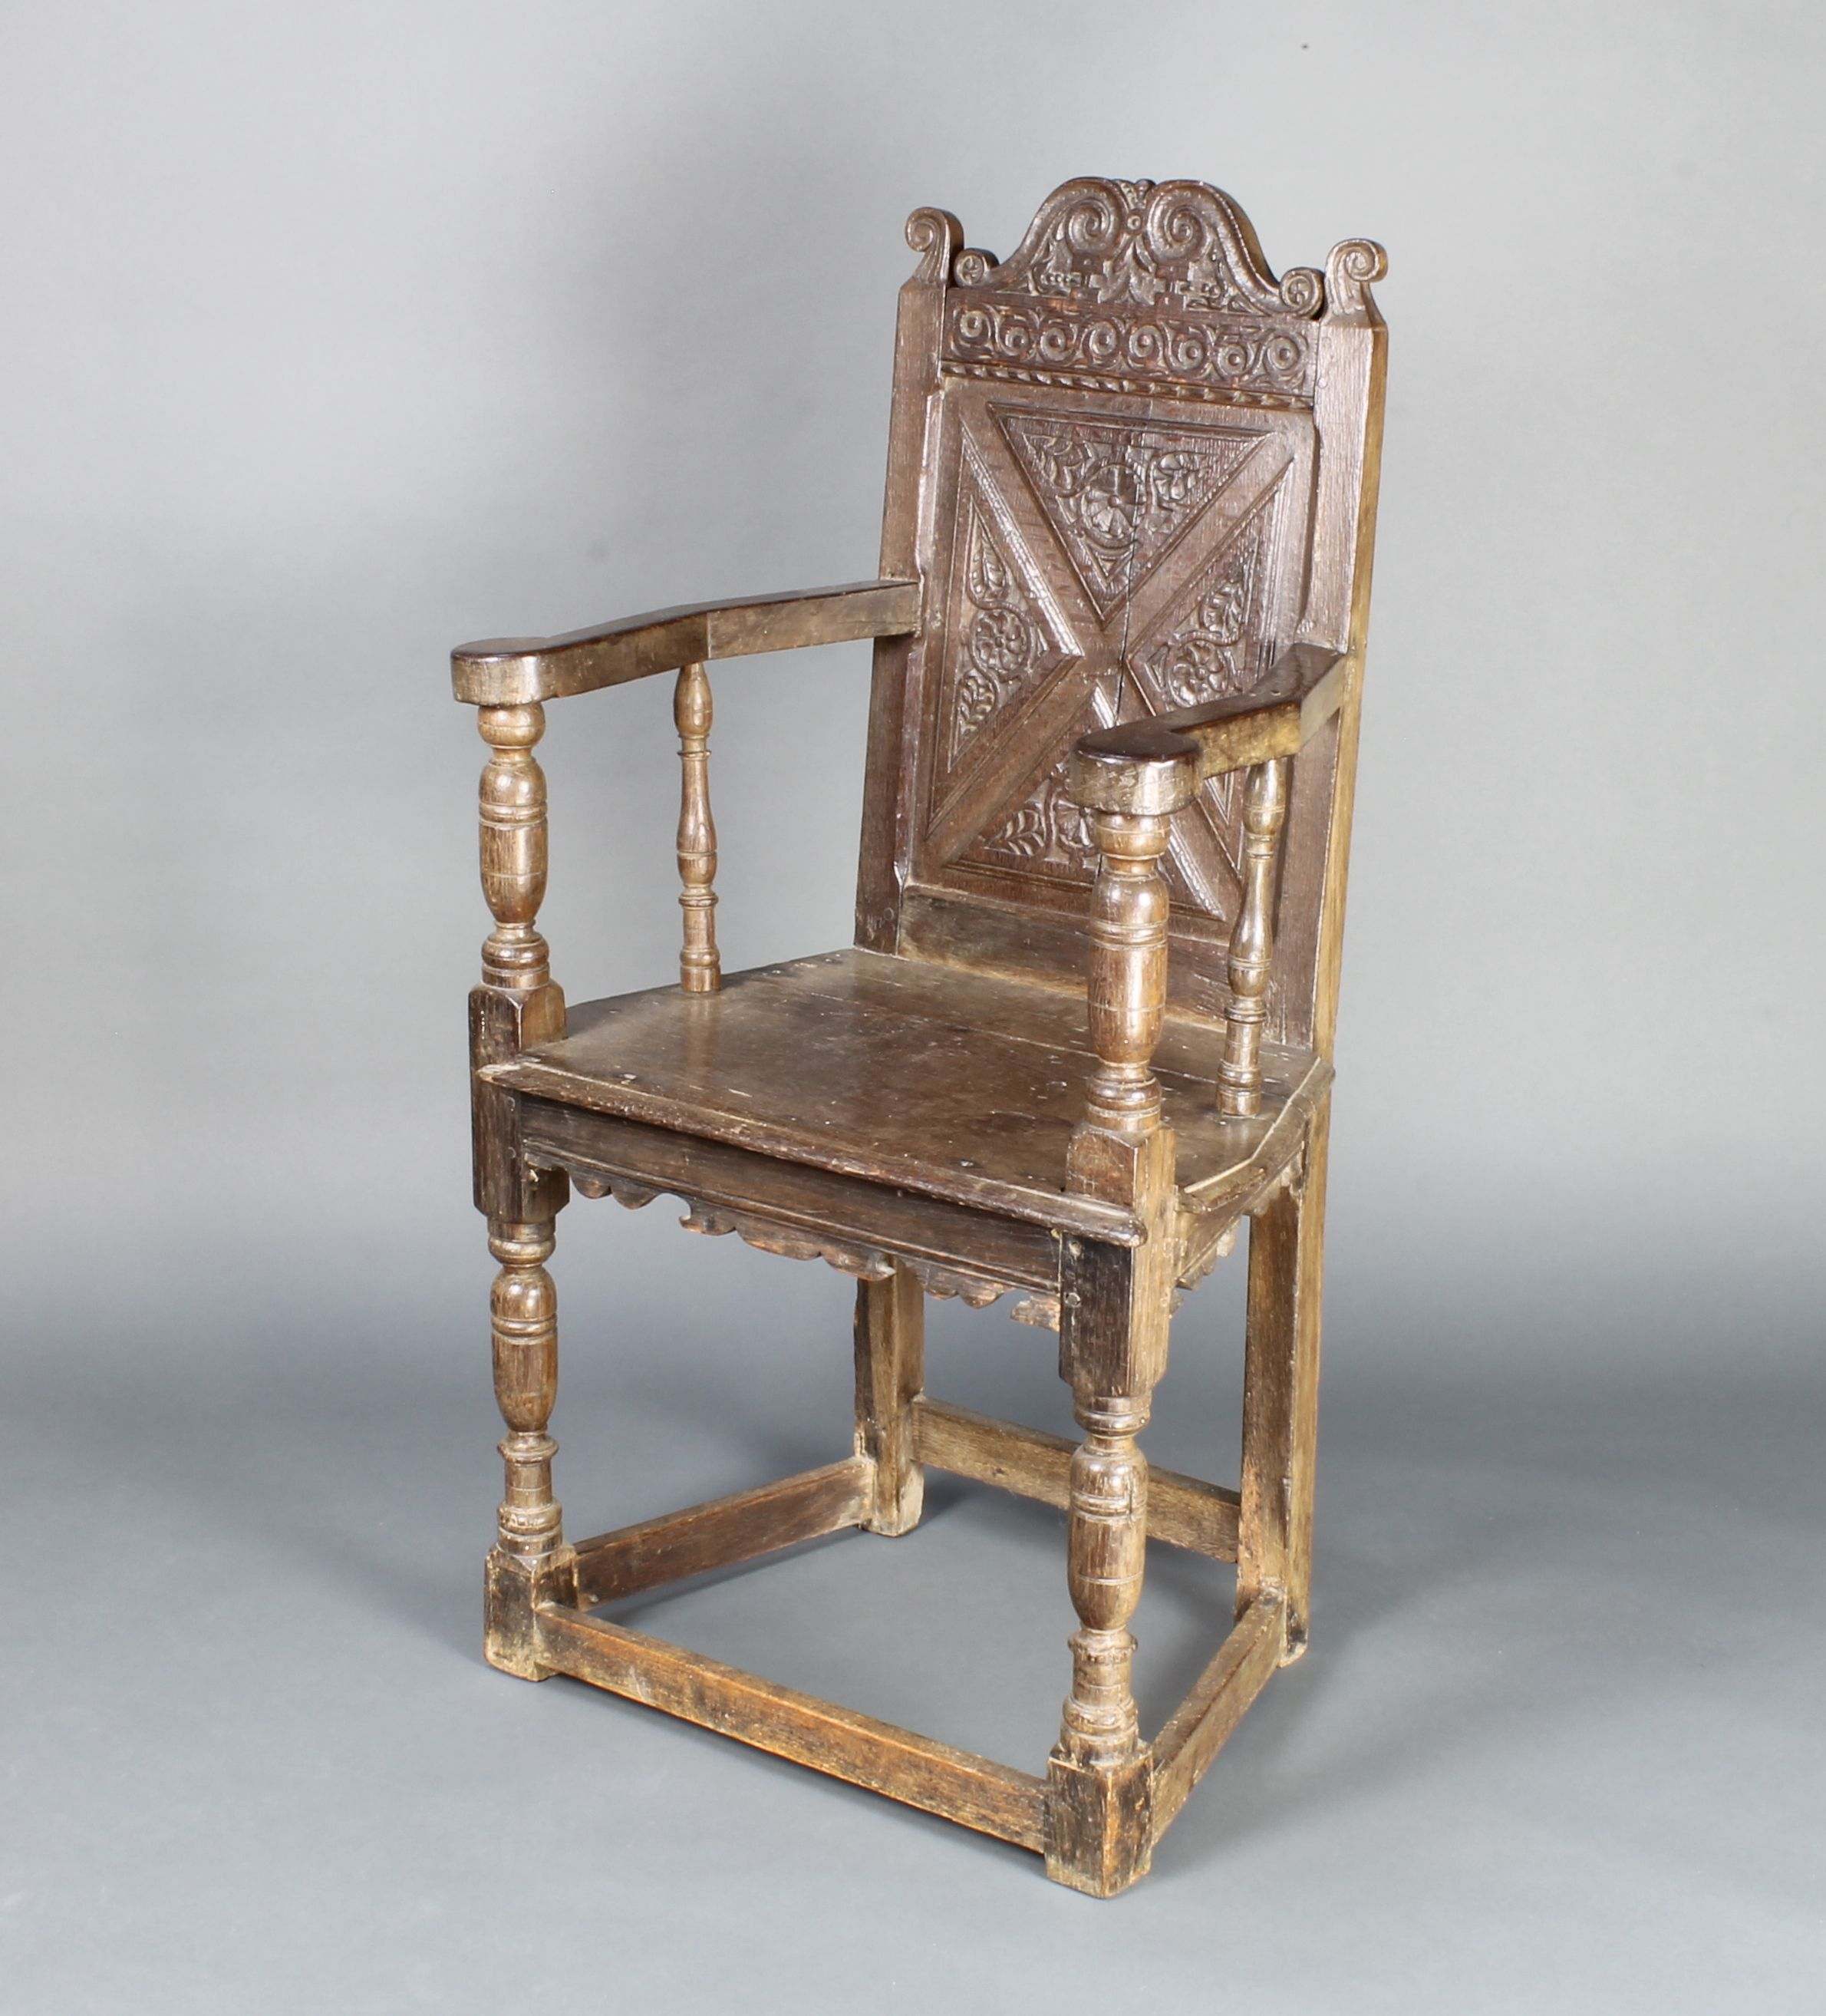 This 17th Century oak Wainscot chair with restoration which